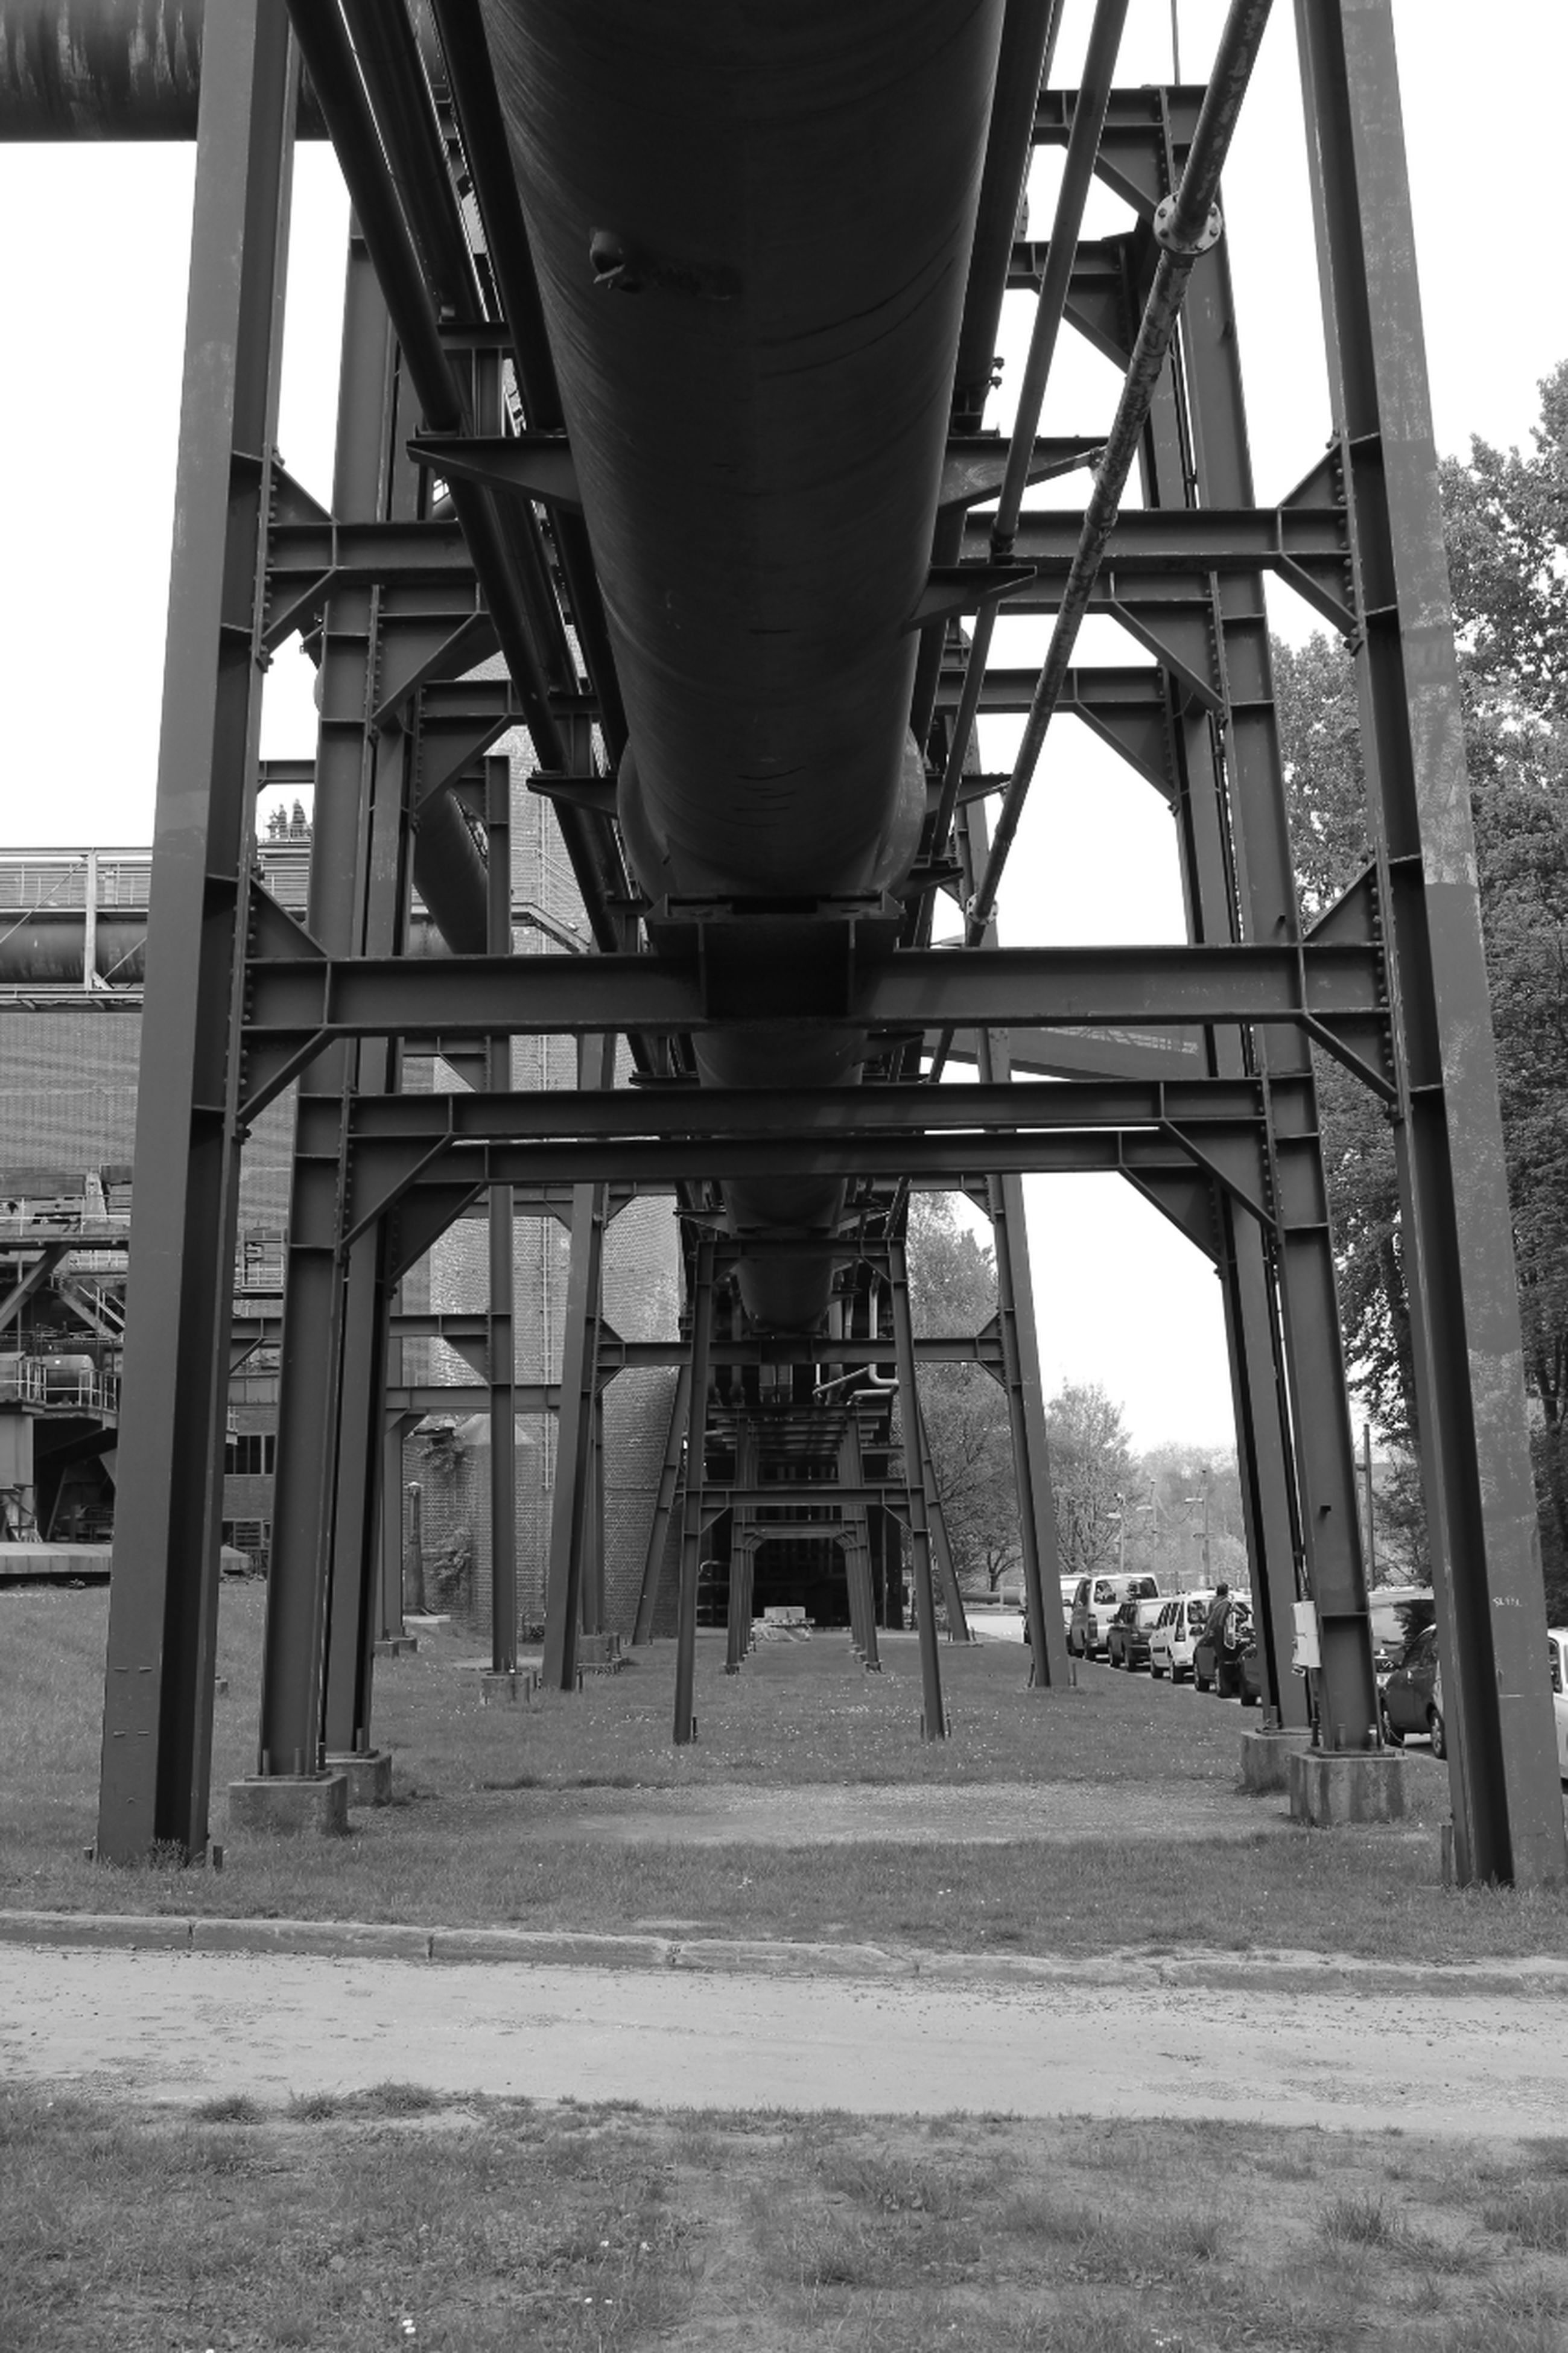 built structure, bridge - man made structure, architecture, connection, transportation, engineering, metal, sky, metallic, bridge, architectural column, day, low angle view, no people, outdoors, support, railway bridge, sunlight, river, below